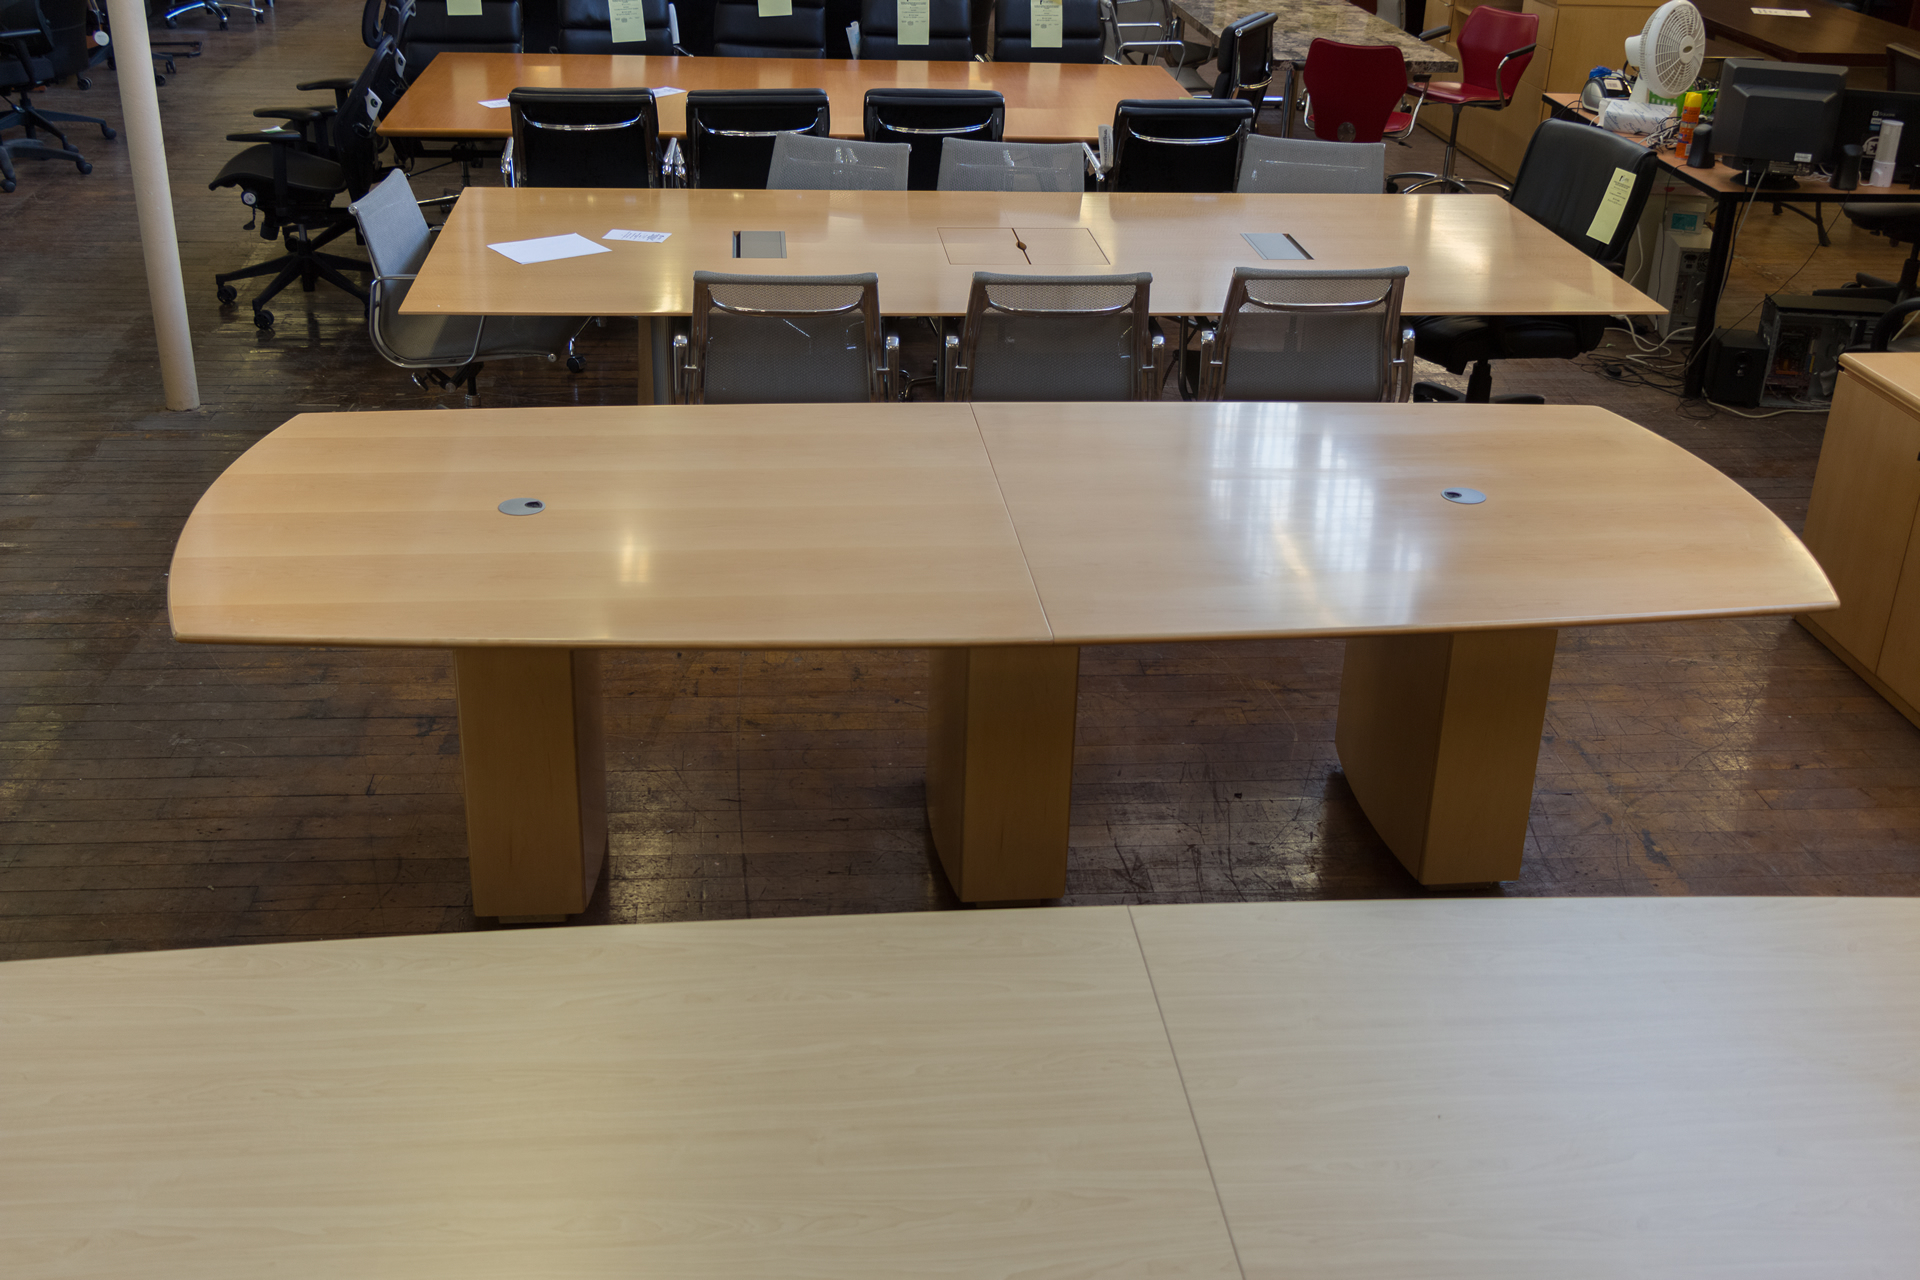 peartreeofficefurniture_peartreeofficefurniture_peartreeofficefurniture_peartree-sienna-series-boat-shaped-wood-conference-table-2.jpg